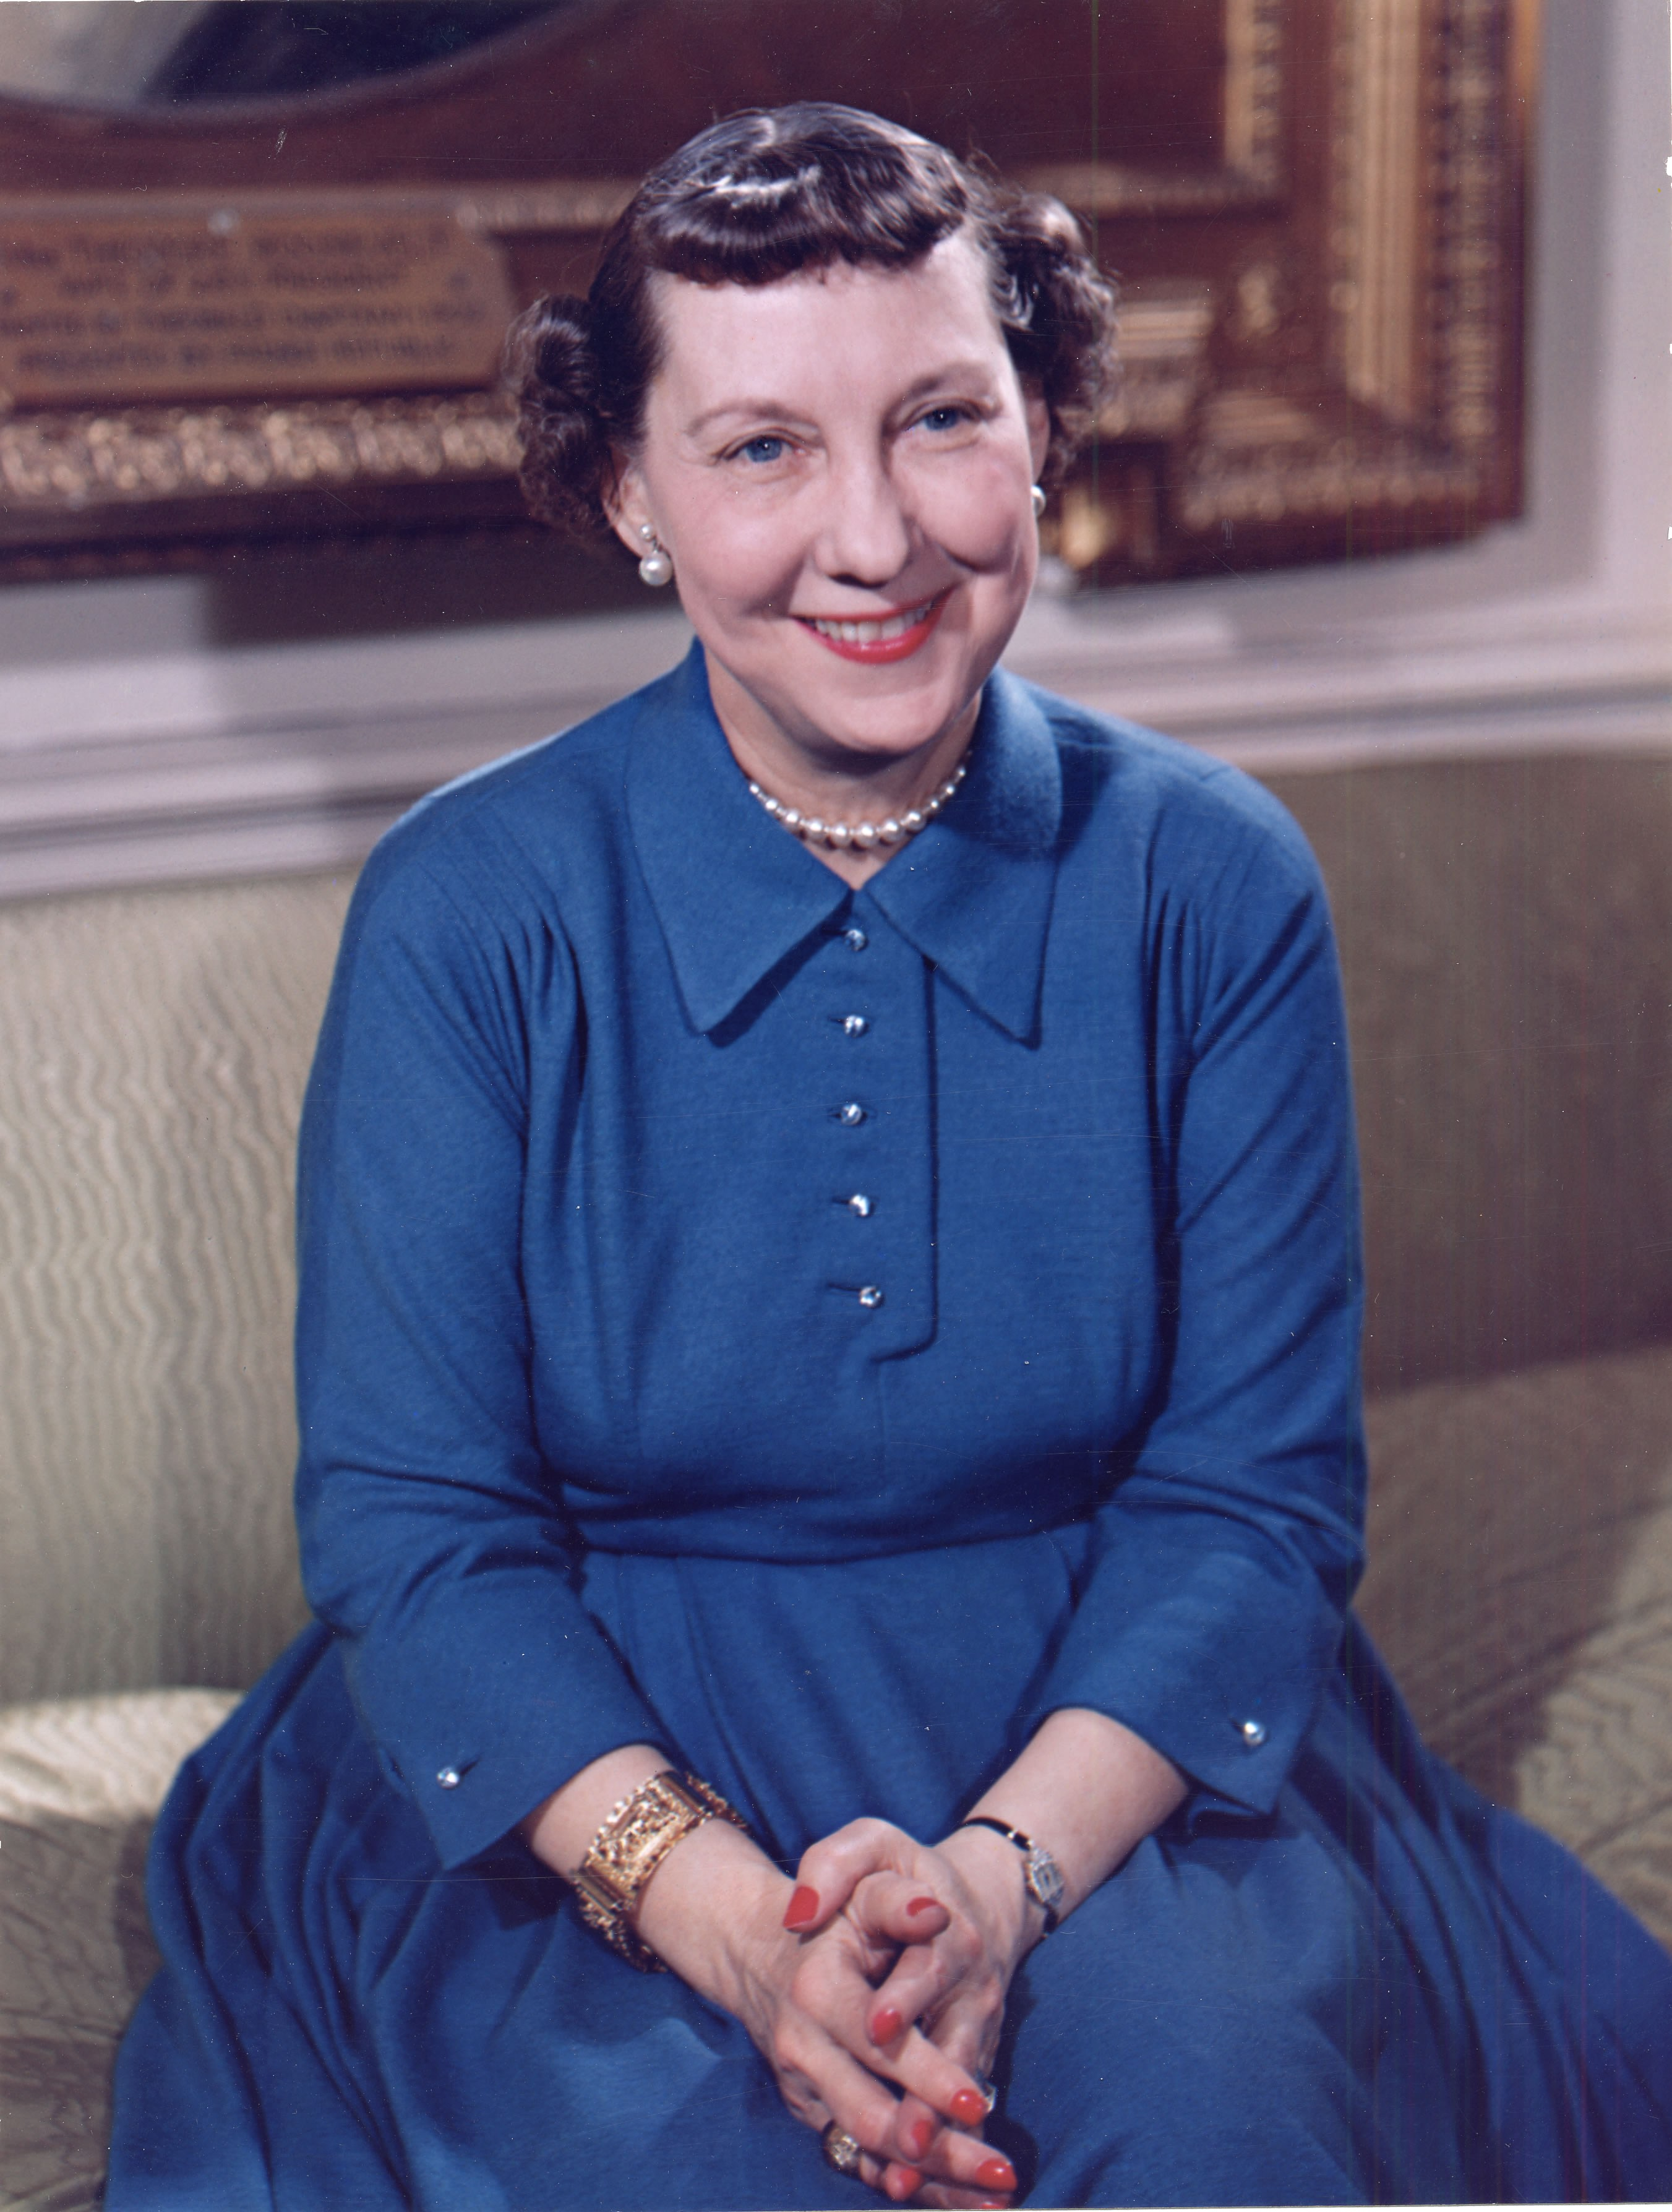 Mamie_Eisenhower_color_photo_portrait,_White_House,_May_1954.jpg